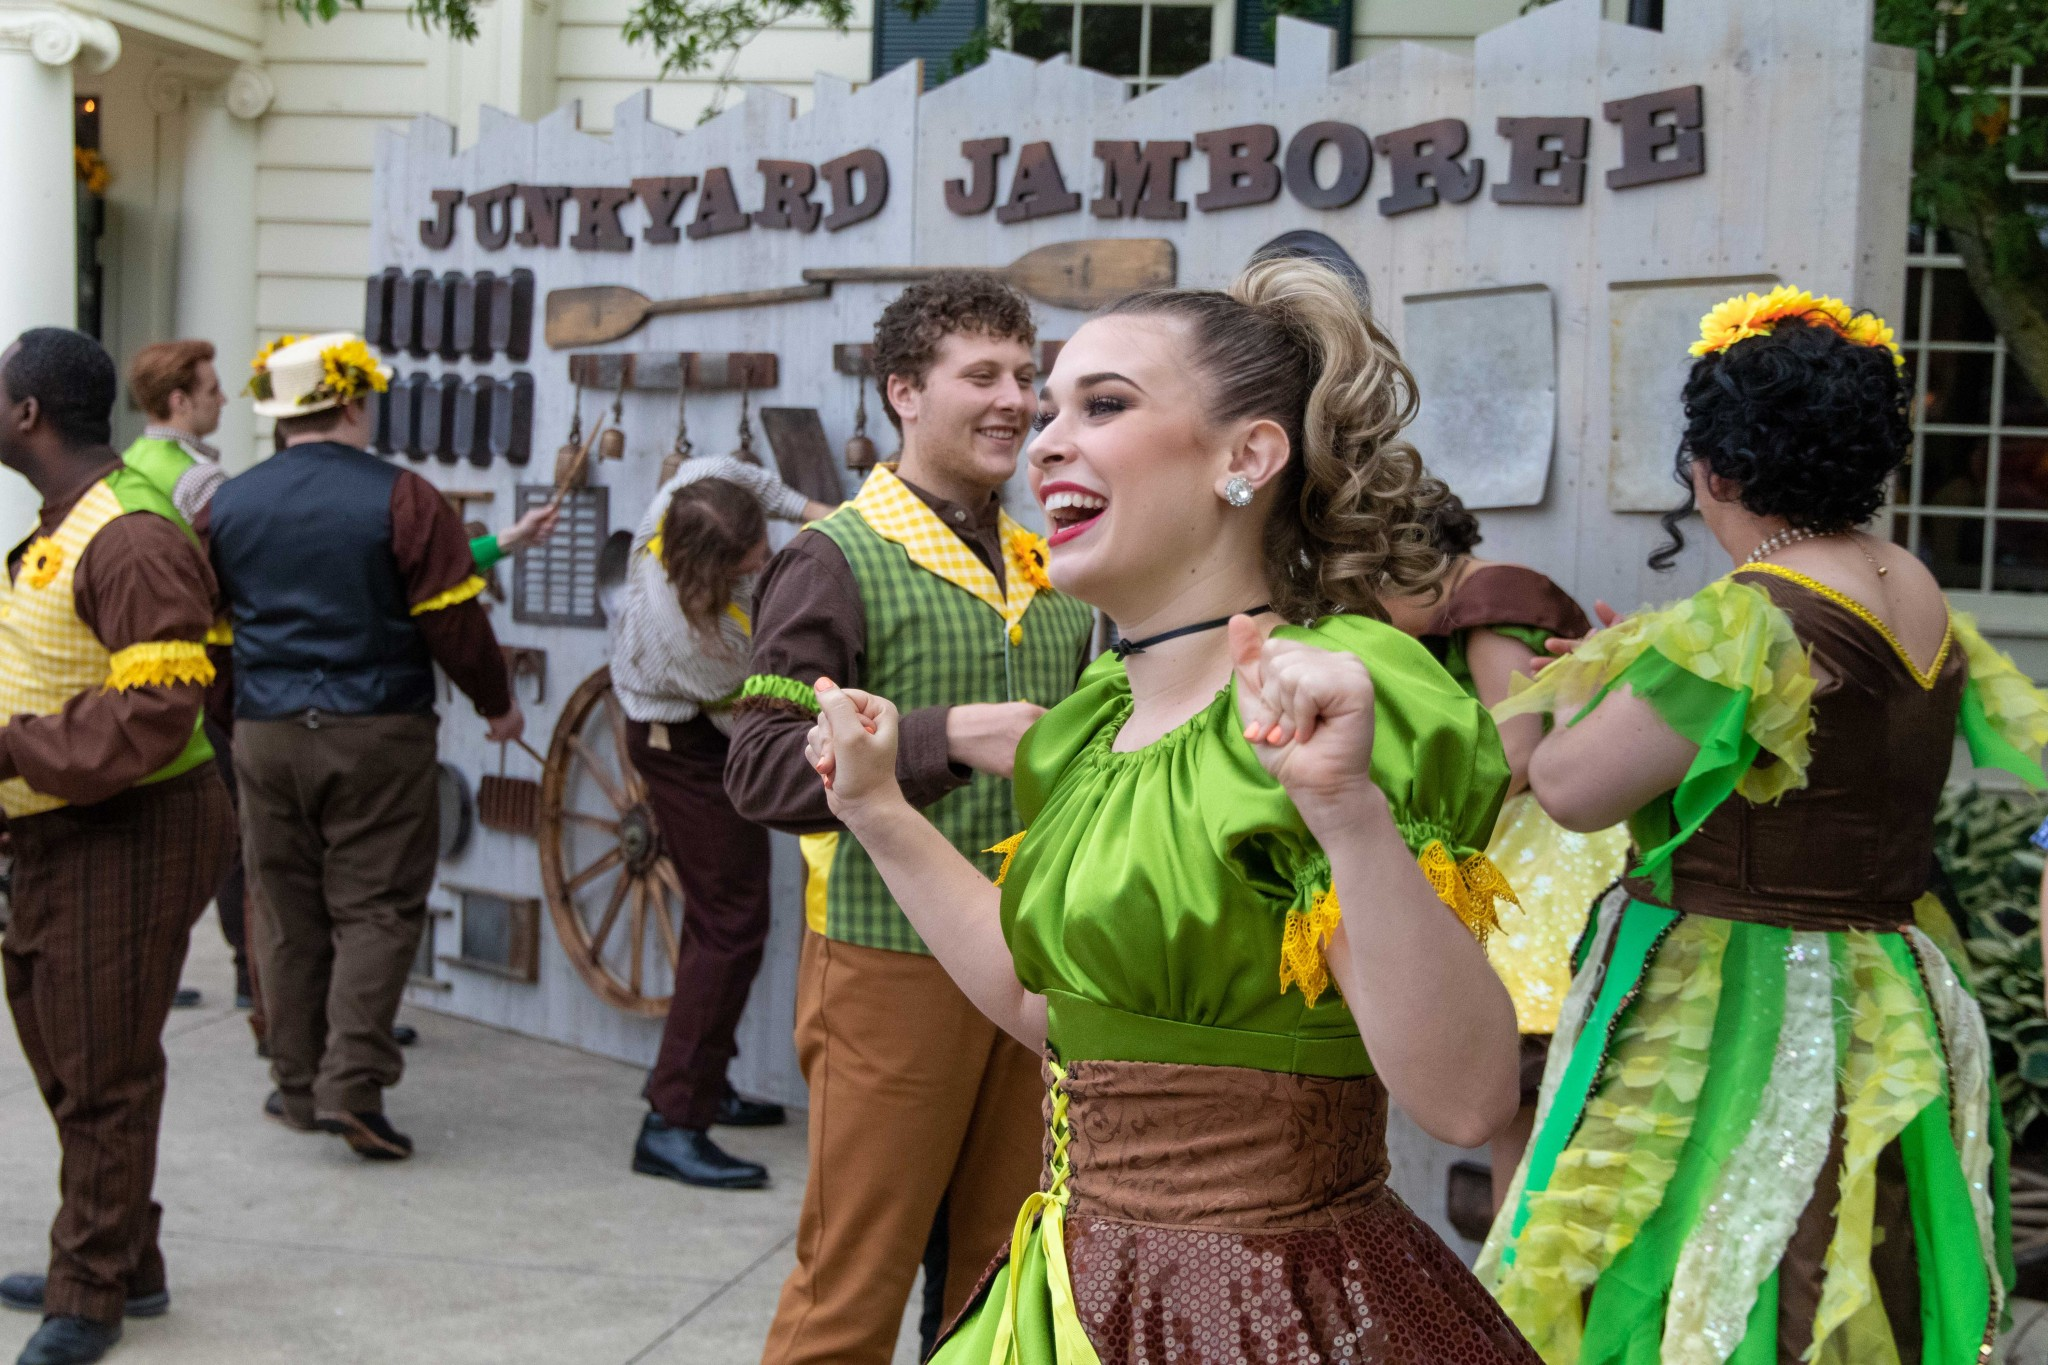 Frontier Festival – a celebration of hope, health and harvest – transforms Cedar Point's Frontier Town into a Wild West hootenanny, with music, interactive games, street entertainers and a mouth-watering food and drink menu. (Cedar Point photo)